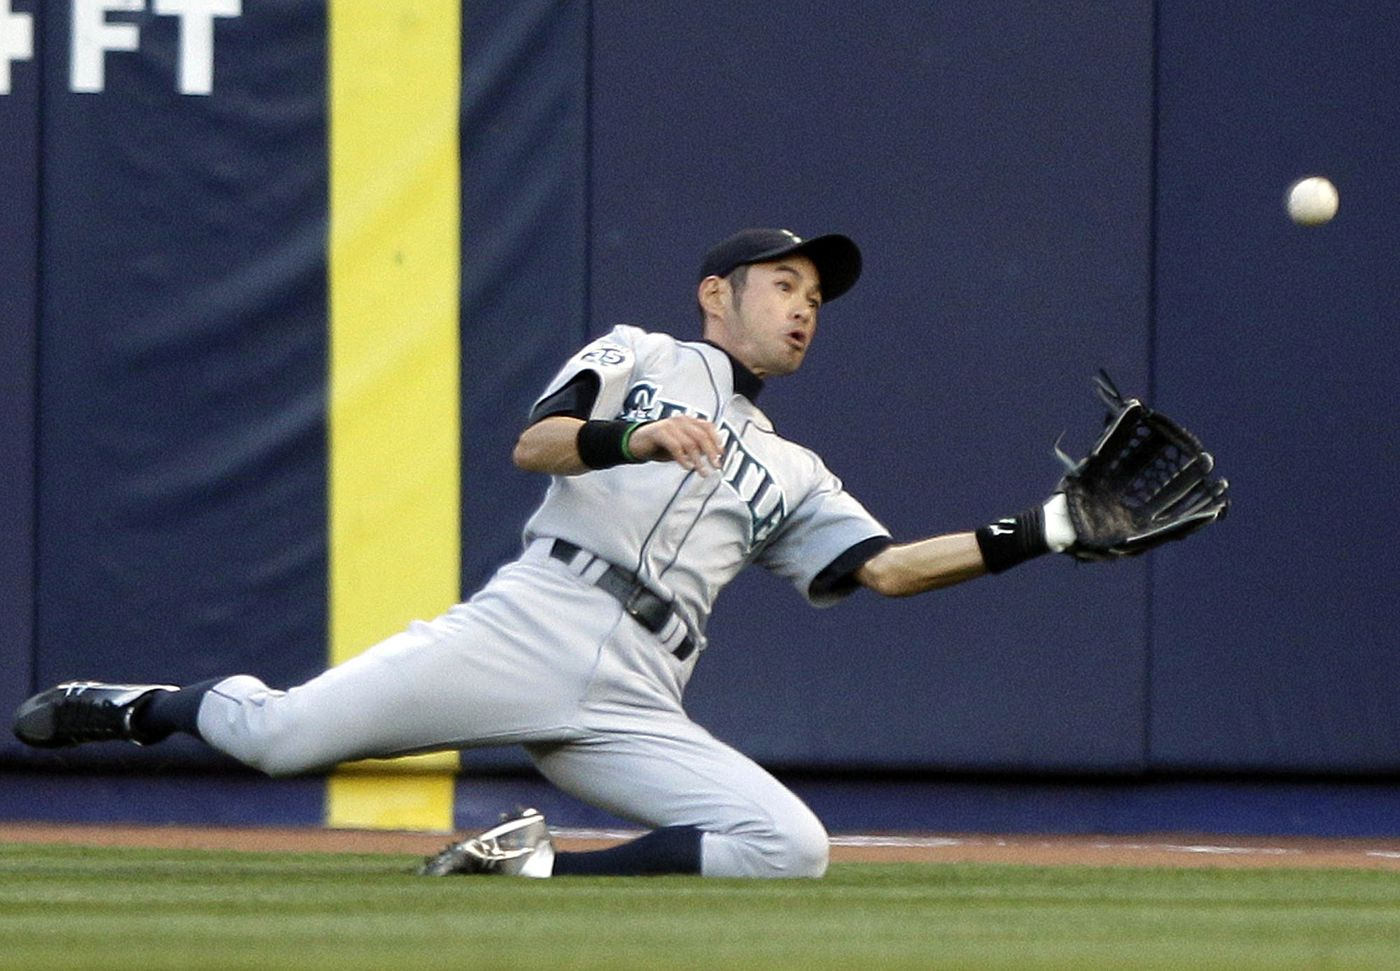 American League Preview Odds Picks And Moves For The 2018 Mlb Season Ichiro Young Red File Photo Future Hall Of Famer Suzuki Is Back With Mariners